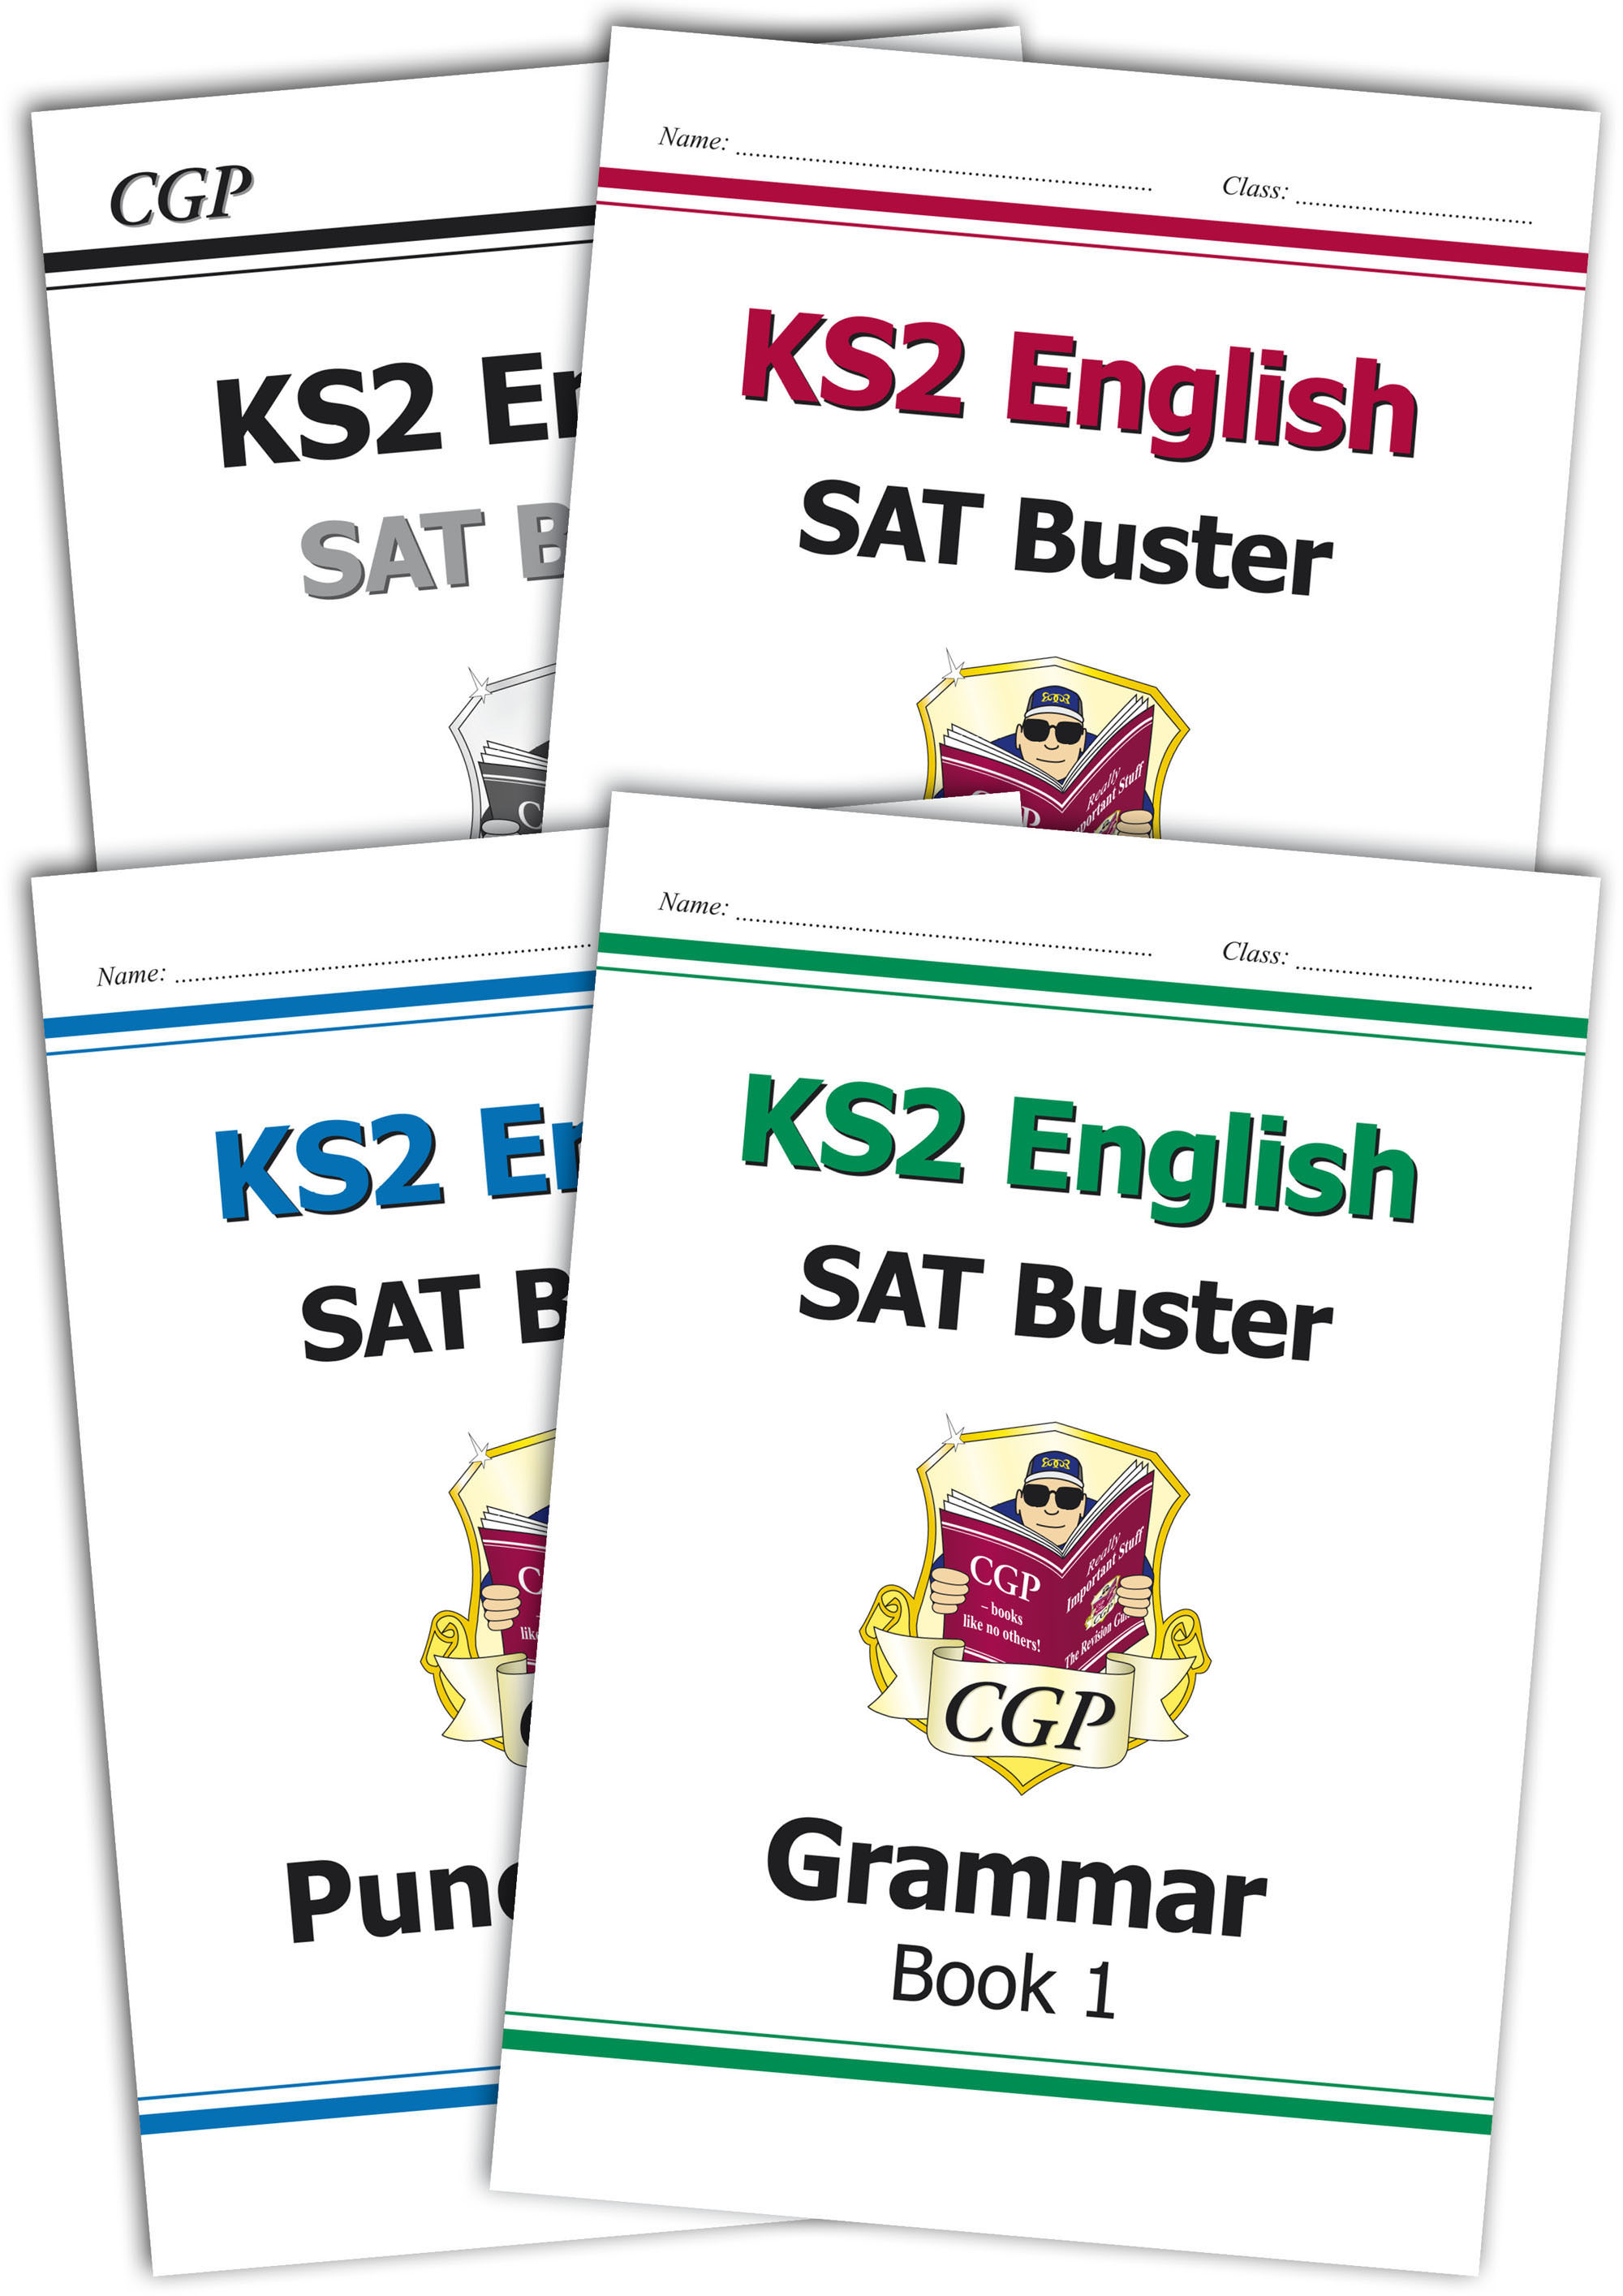 E6SBB23 - The Complete KS2 English SPaG SAT Buster Book 1 Bundle - incl answers (for the 2019 tests)